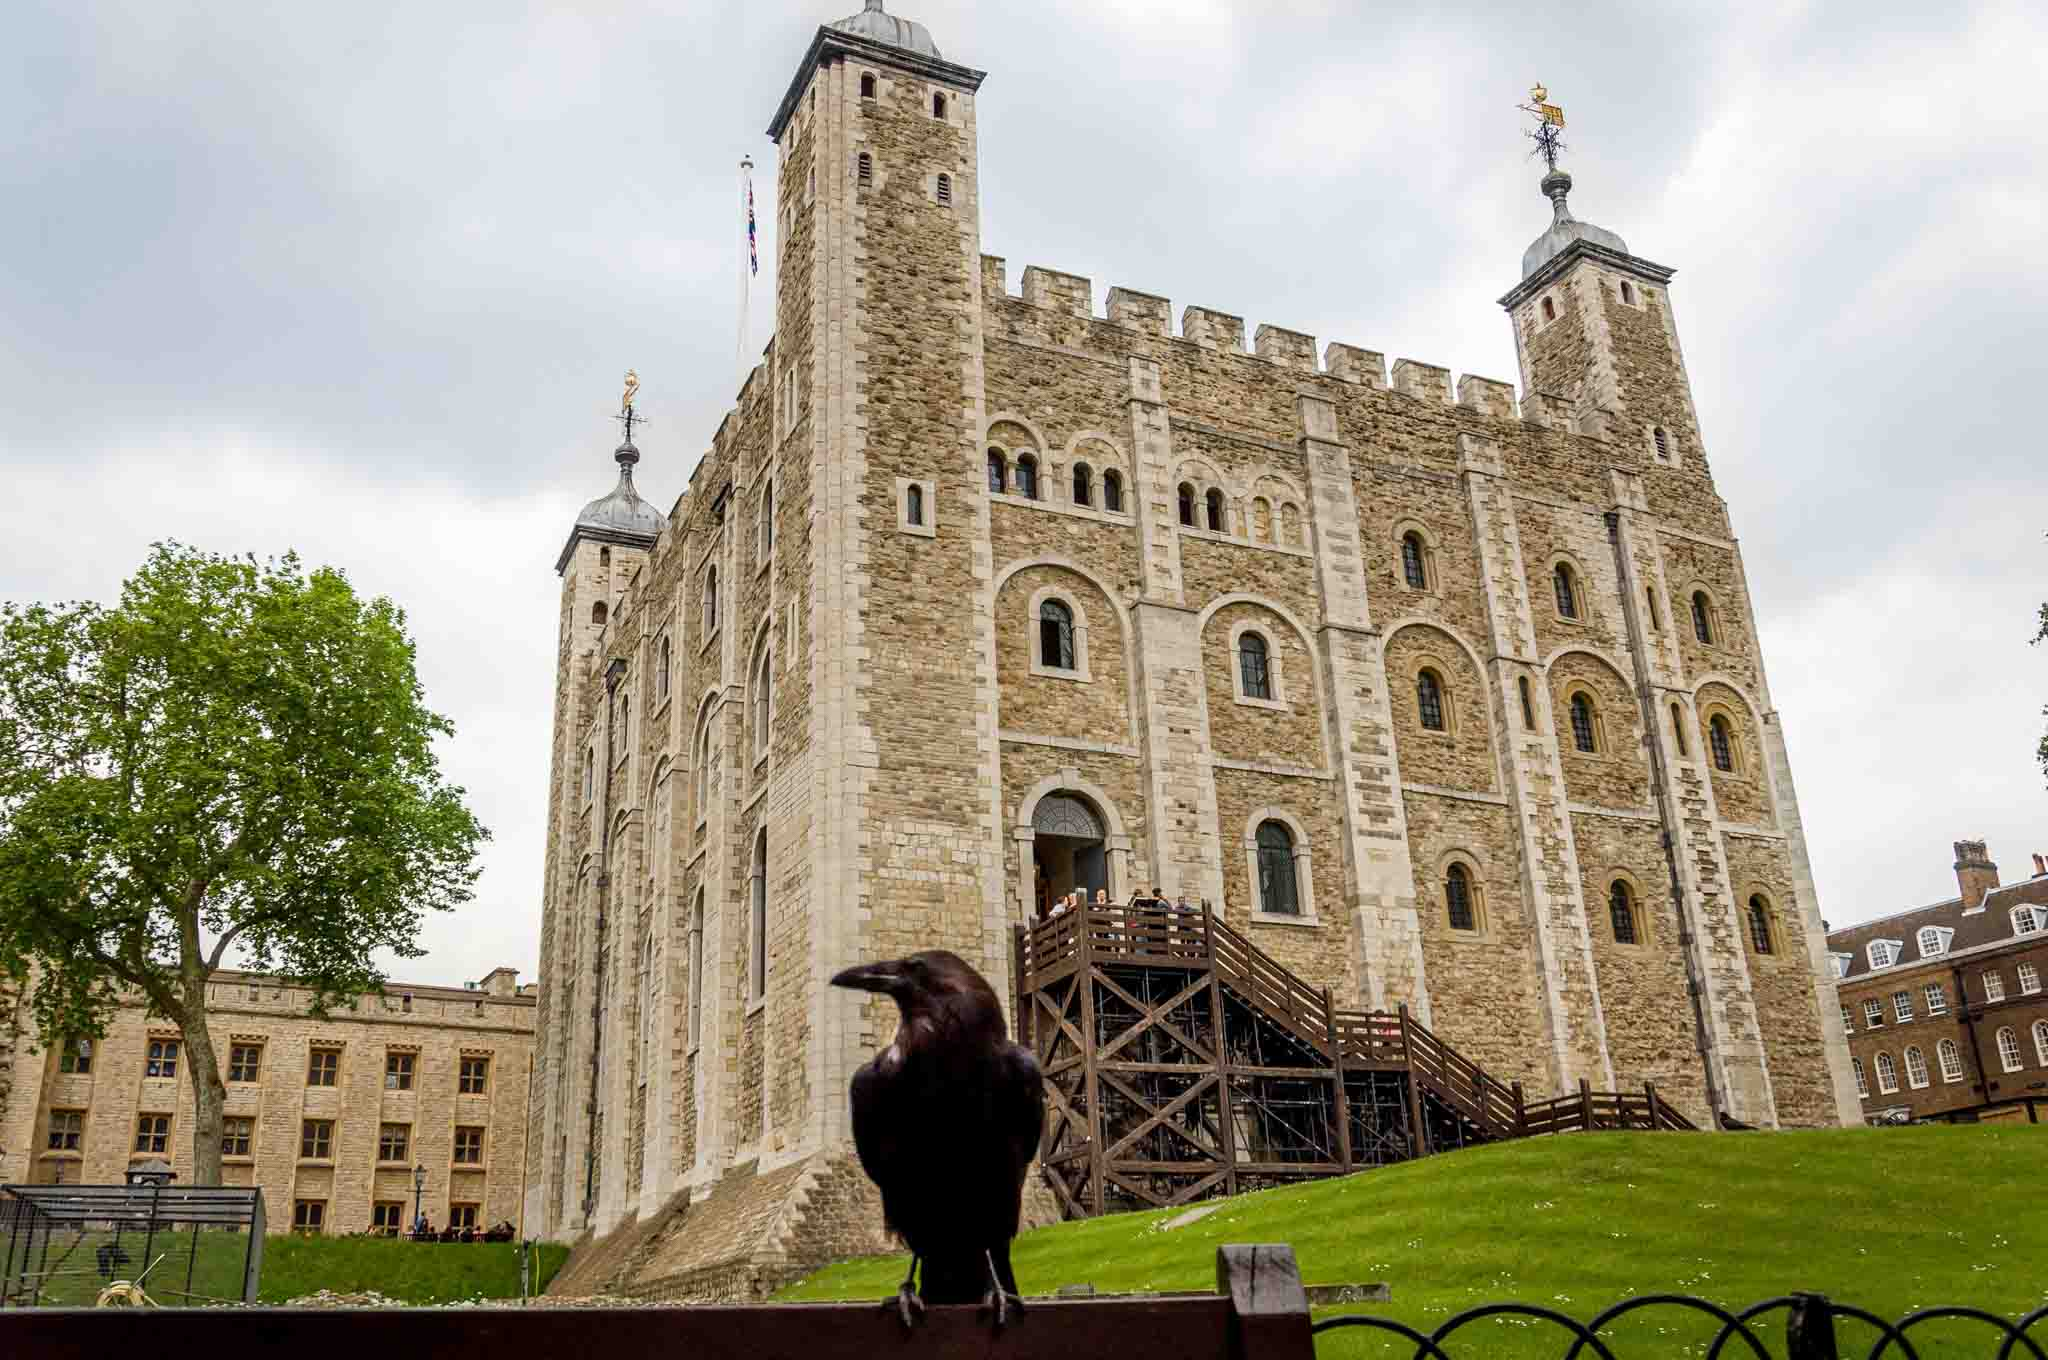 Raven in front of large stone building with turrets, the Tower of London